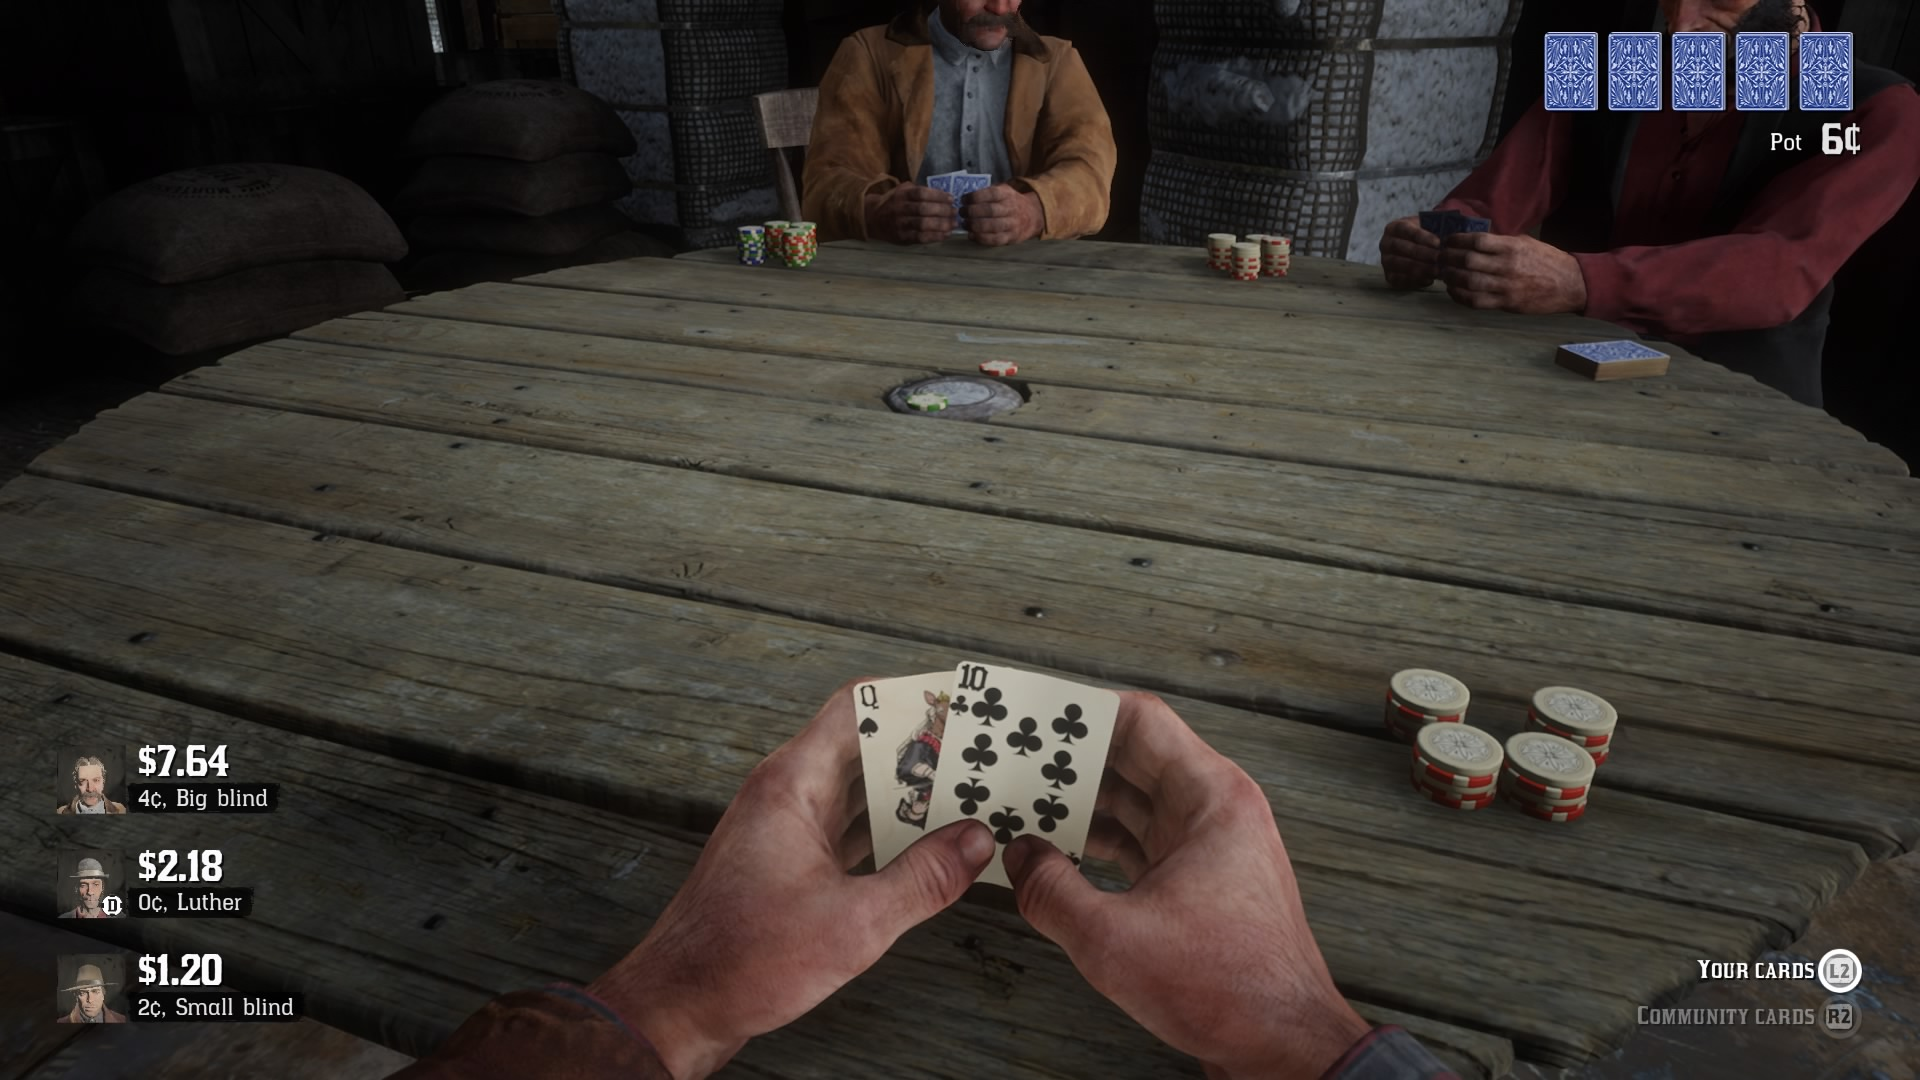 Rockstar Working on Fix for Red Dead Redemption 2 Camp Glitch